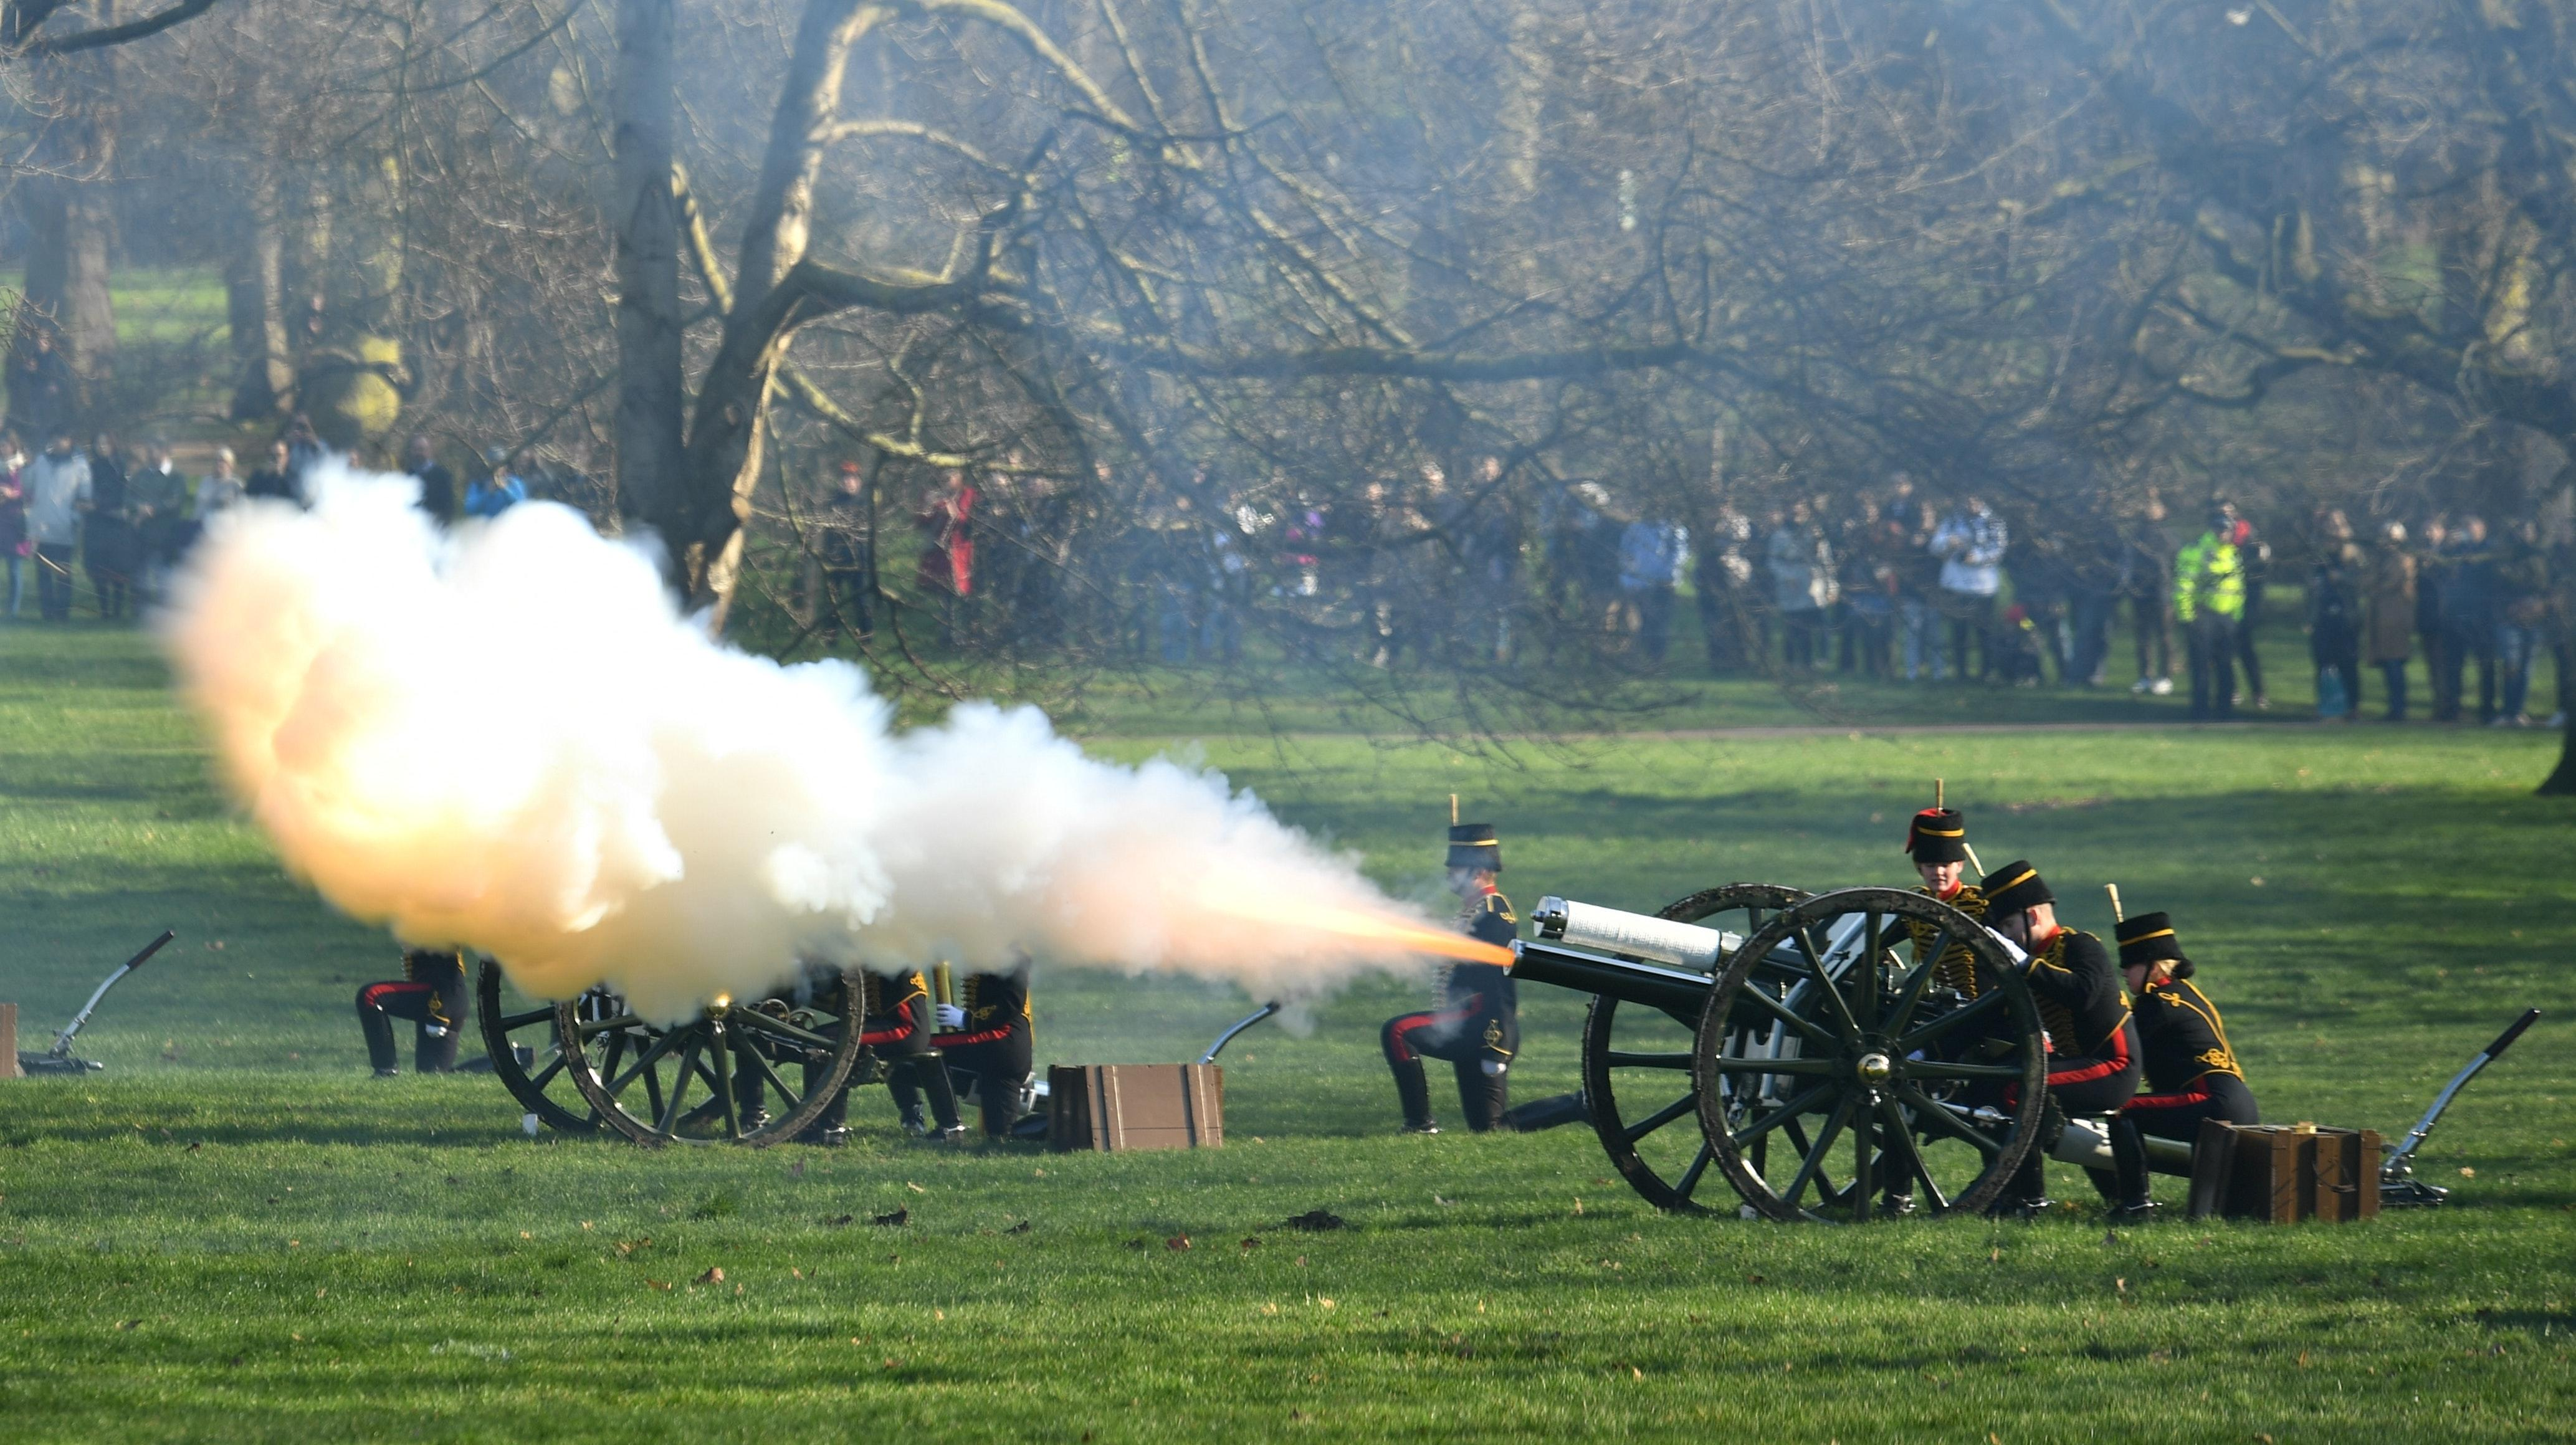 Gun salutes fired to mark Queen's 68 years on the throne